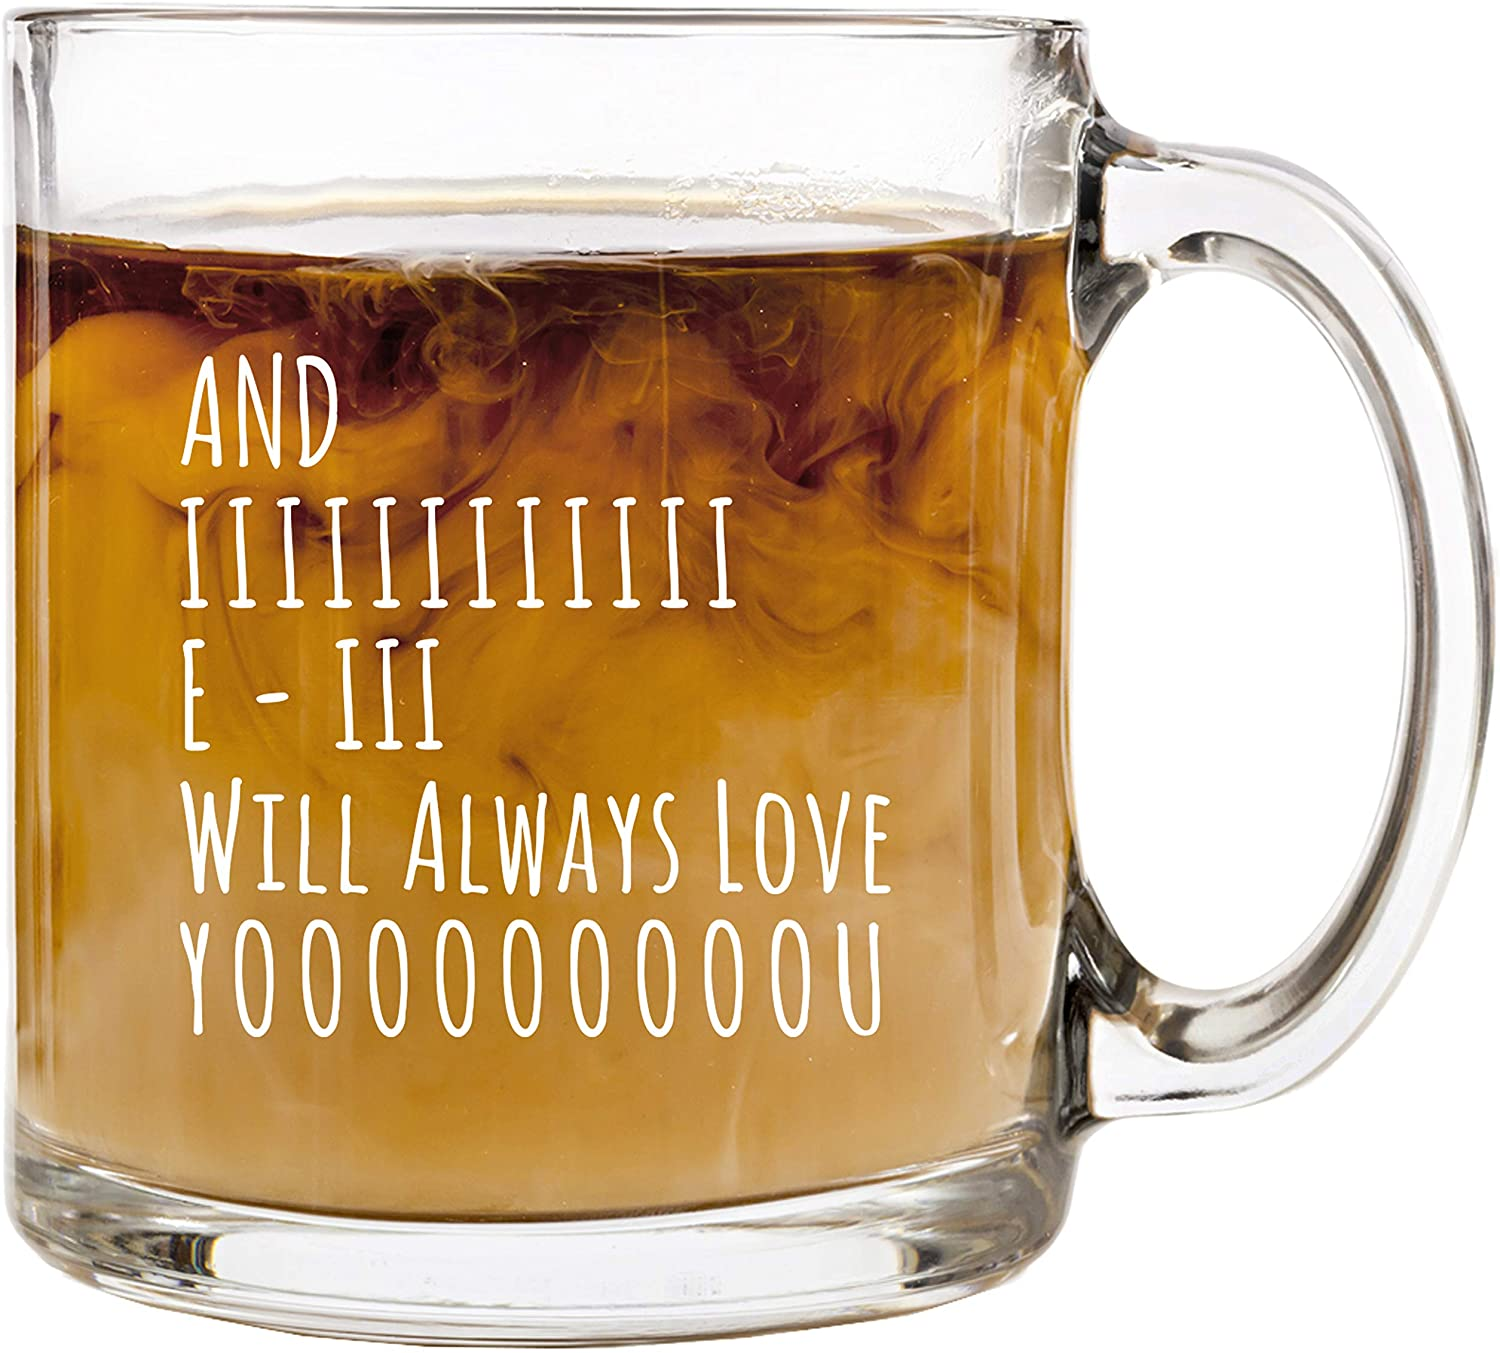 i will always love you mug, valentine's day gift ideas 2021